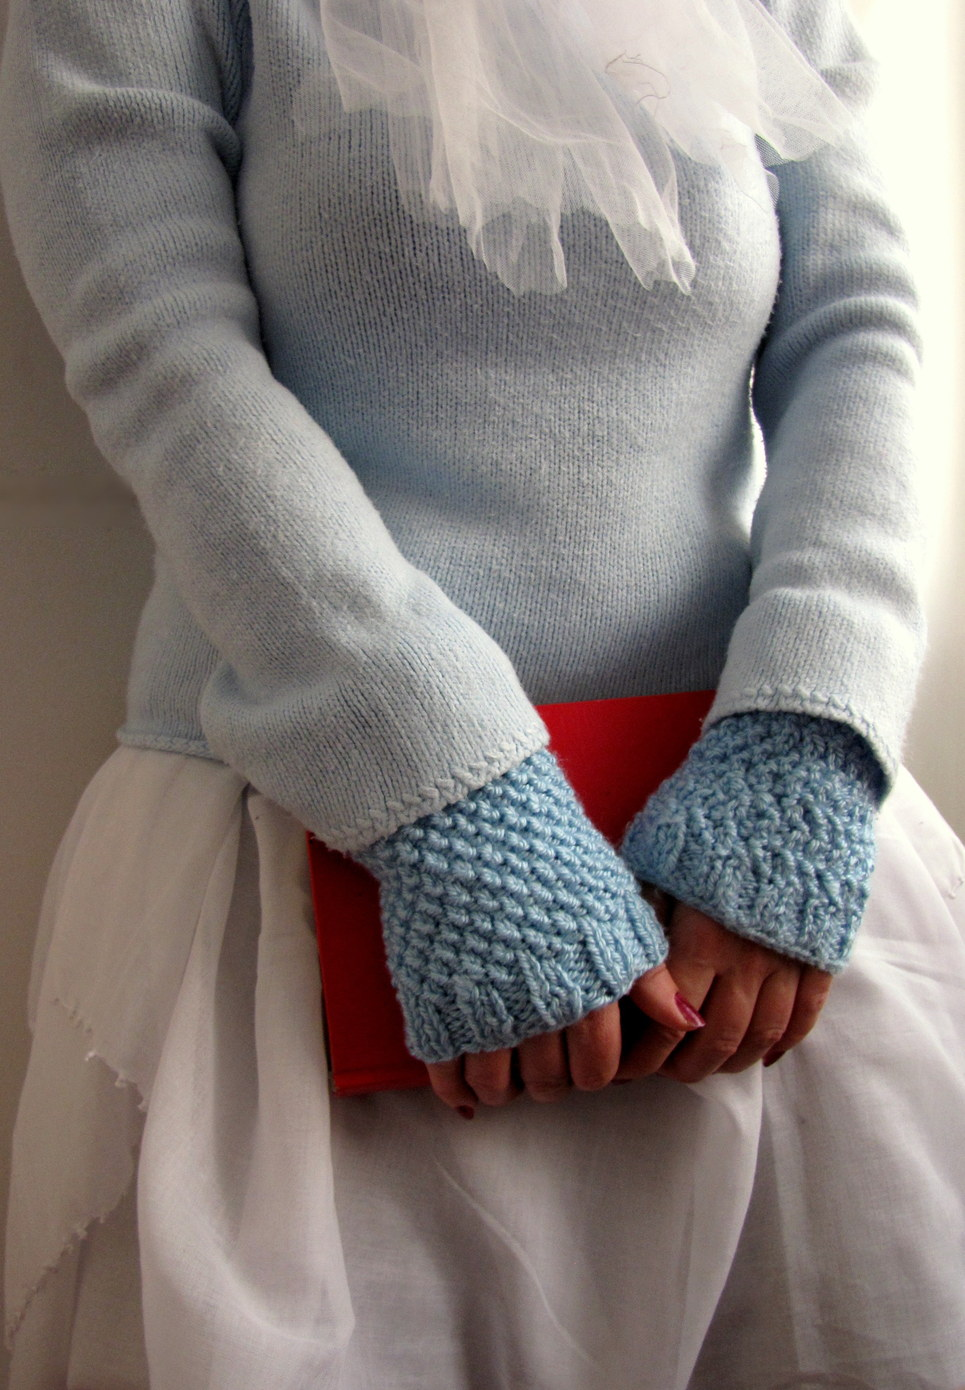 Wrist Warmers Knitting Pattern : Little Treasures: Moss stitch blue knit wrist warmers